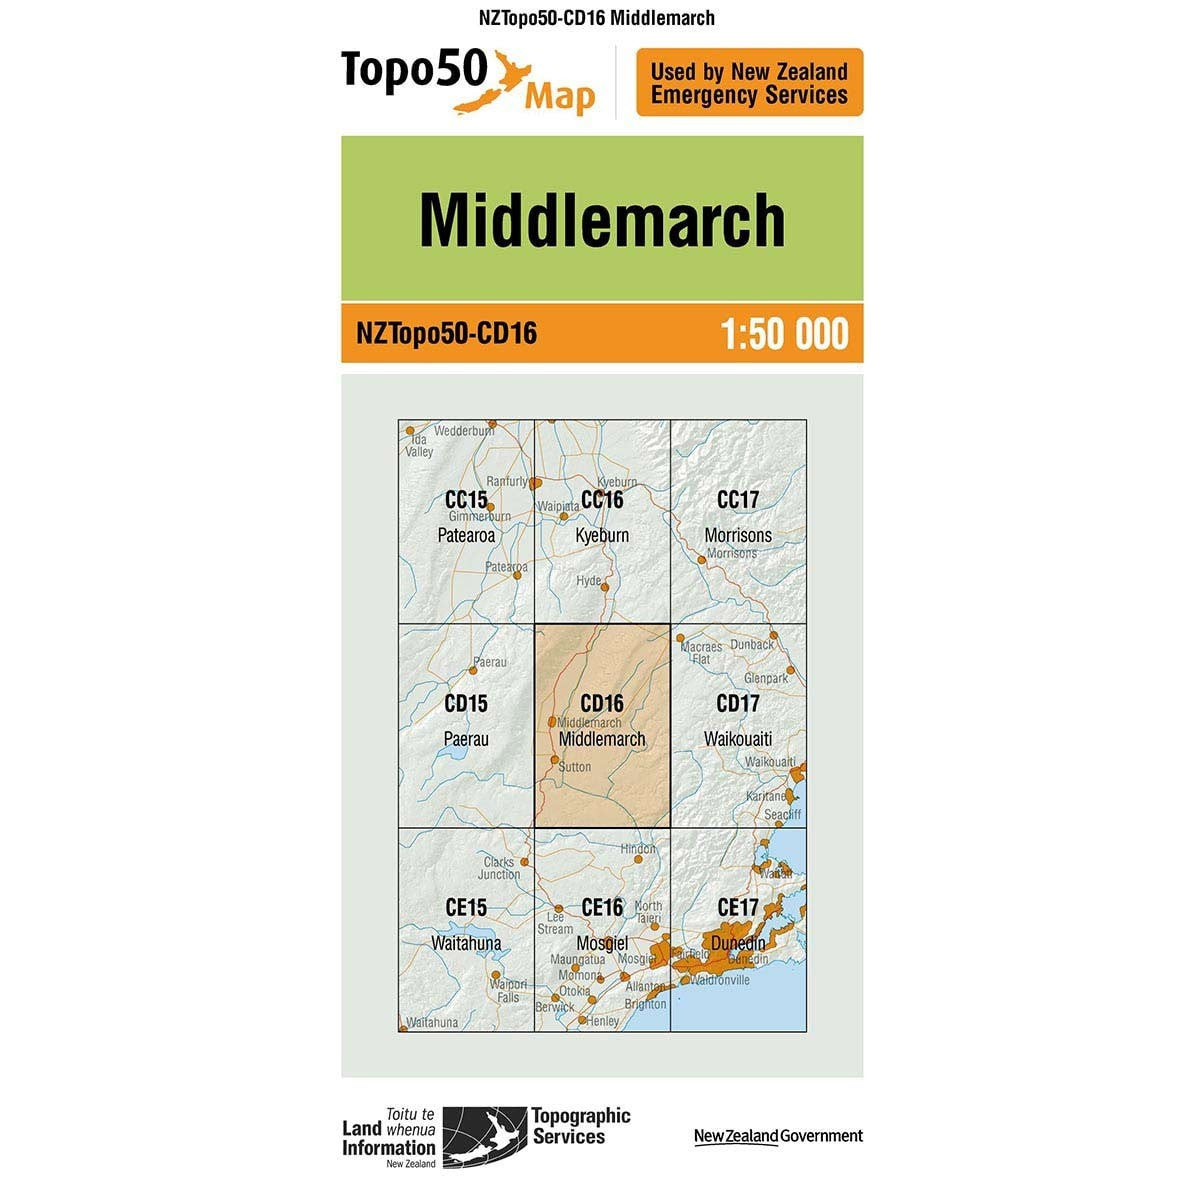 Topo50 CD16 Middlemarch